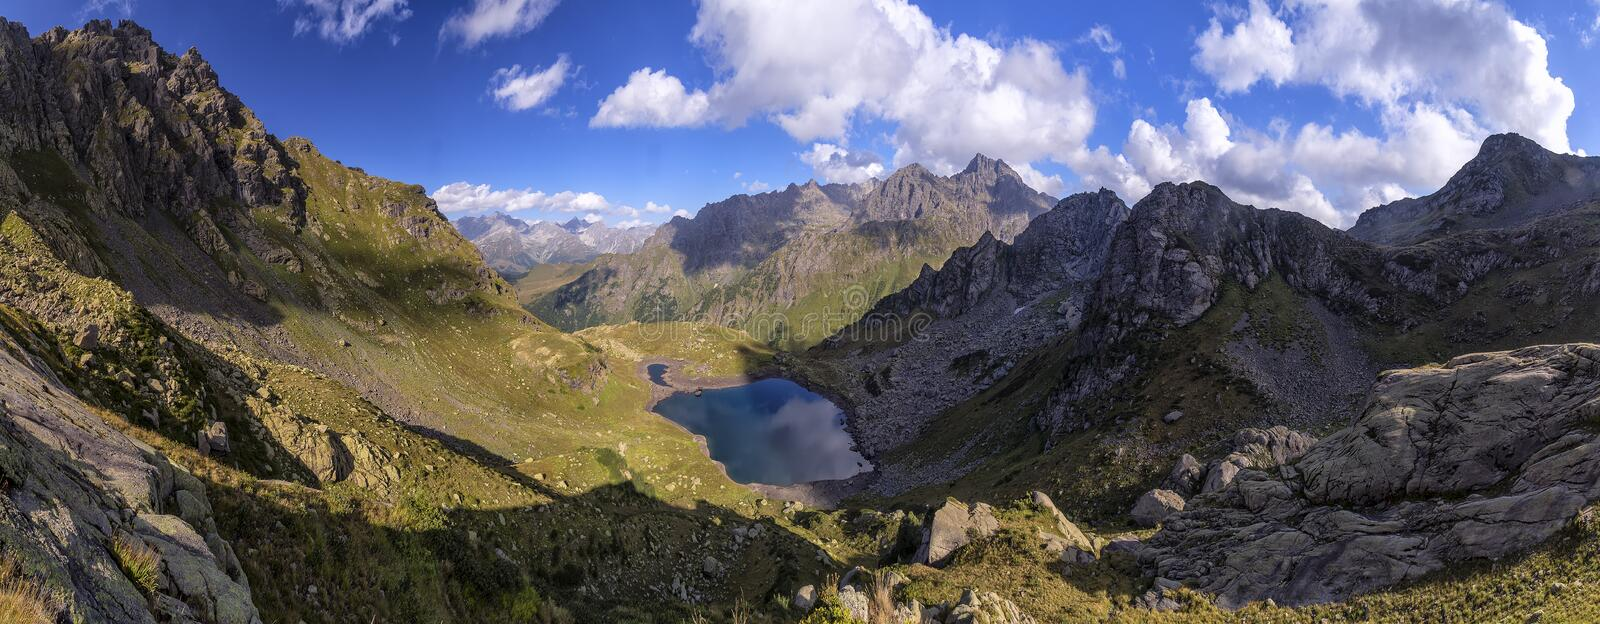 Panorama landscape with a lake in the mountains, huge rocks and stock image